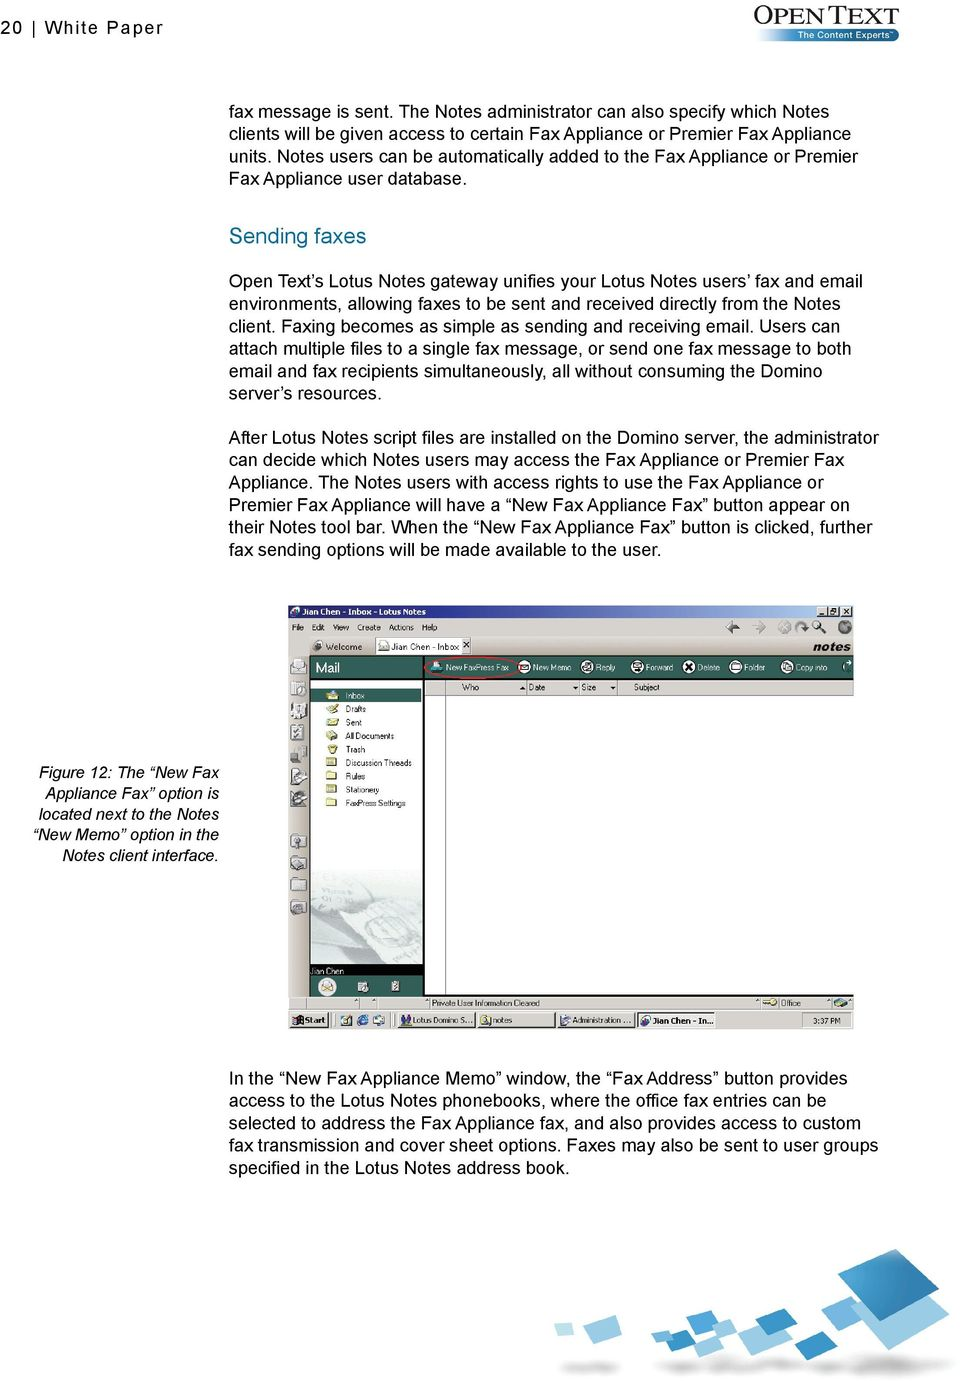 Sending faxes Open Text s Lotus Notes gateway unifies your Lotus Notes users fax and email environments, allowing faxes to be sent and received directly from the Notes client.